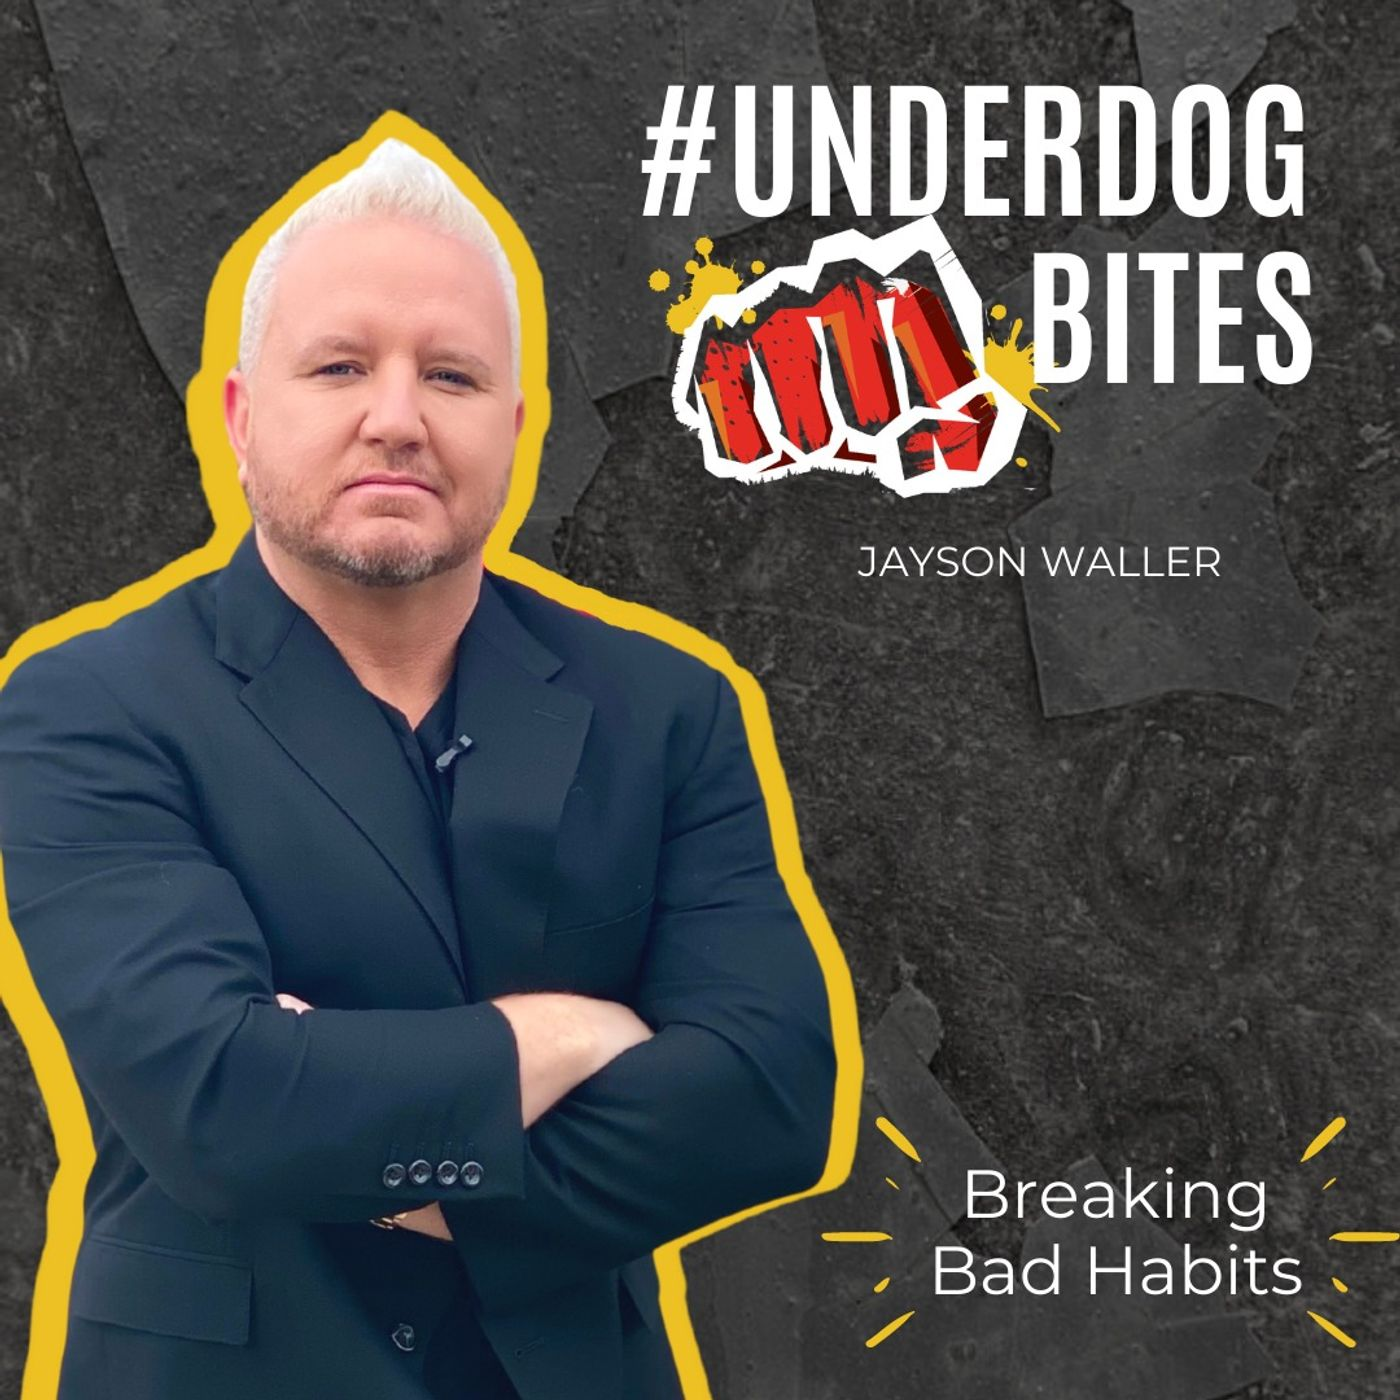 #UnderdogBites: Breaking Bad Habits with Jayson Waller